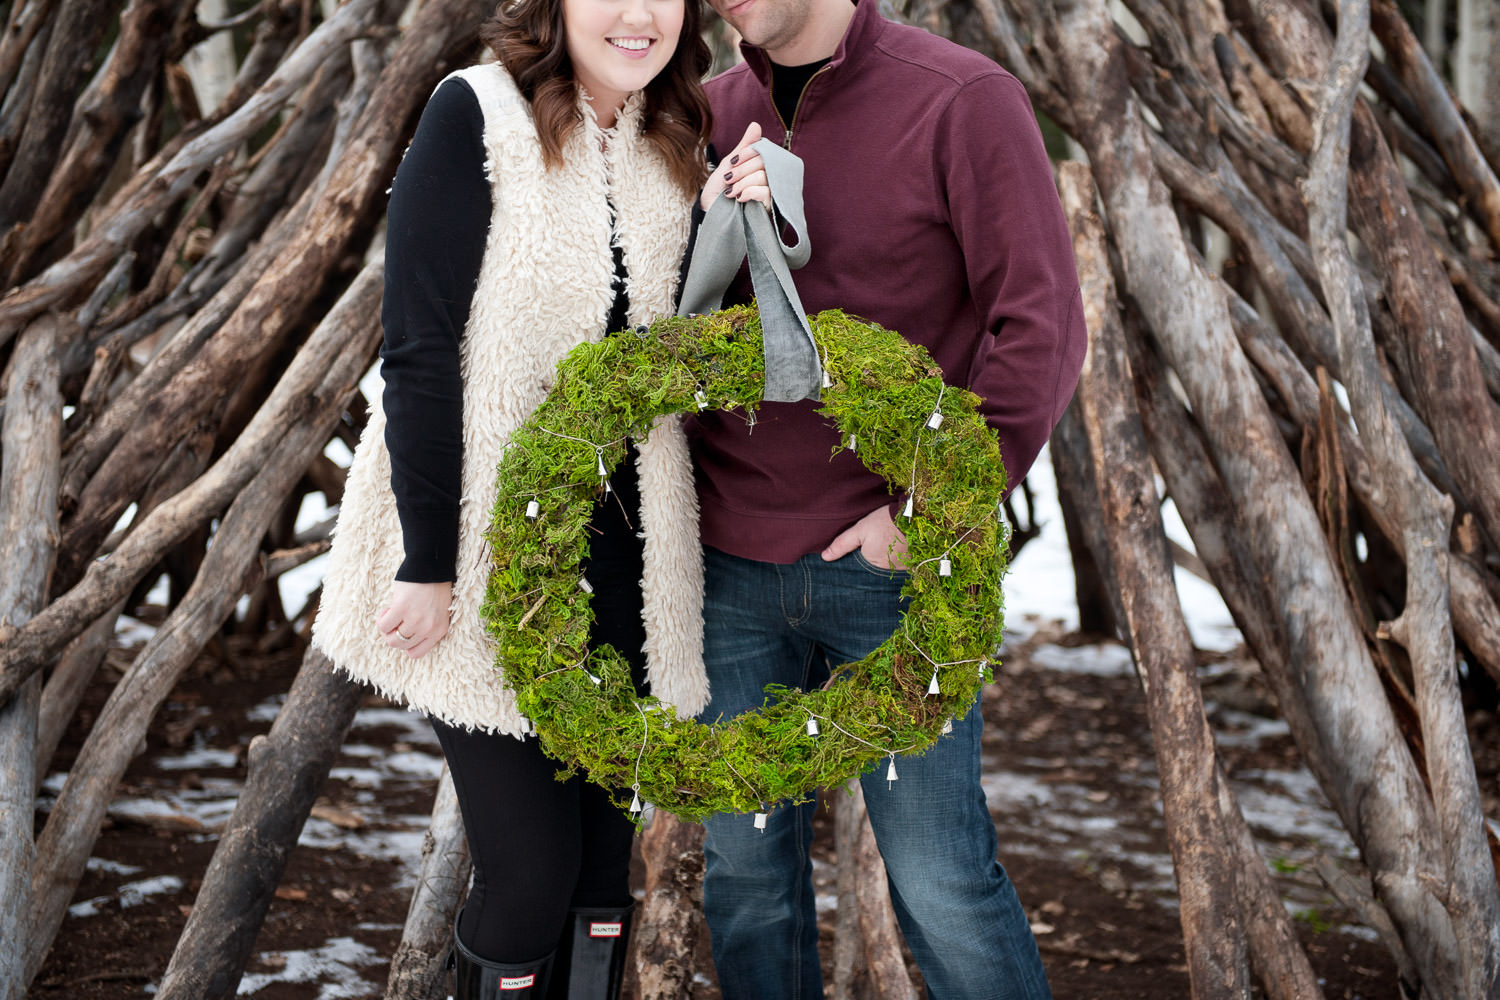 winter wreath at a holiday engagement session captured by Tara Whittaker Photography